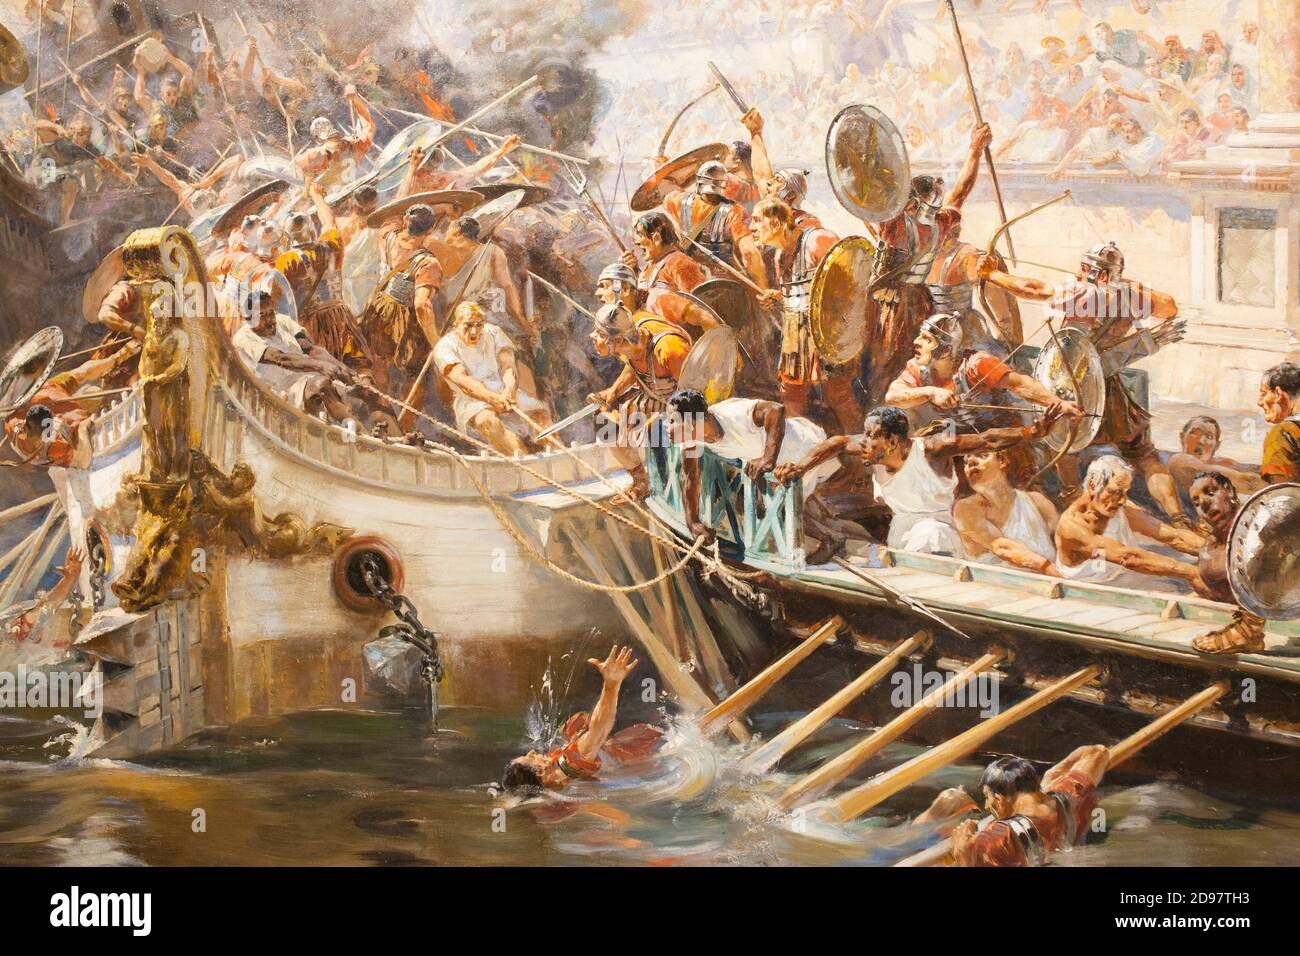 Naumachia, naval battle as mass entertainment in ancient Rome. Painted by Ulpiano Checa in 1894. Local Museum of Colmenar de Oreja, Spain. Detail. Stock Photo